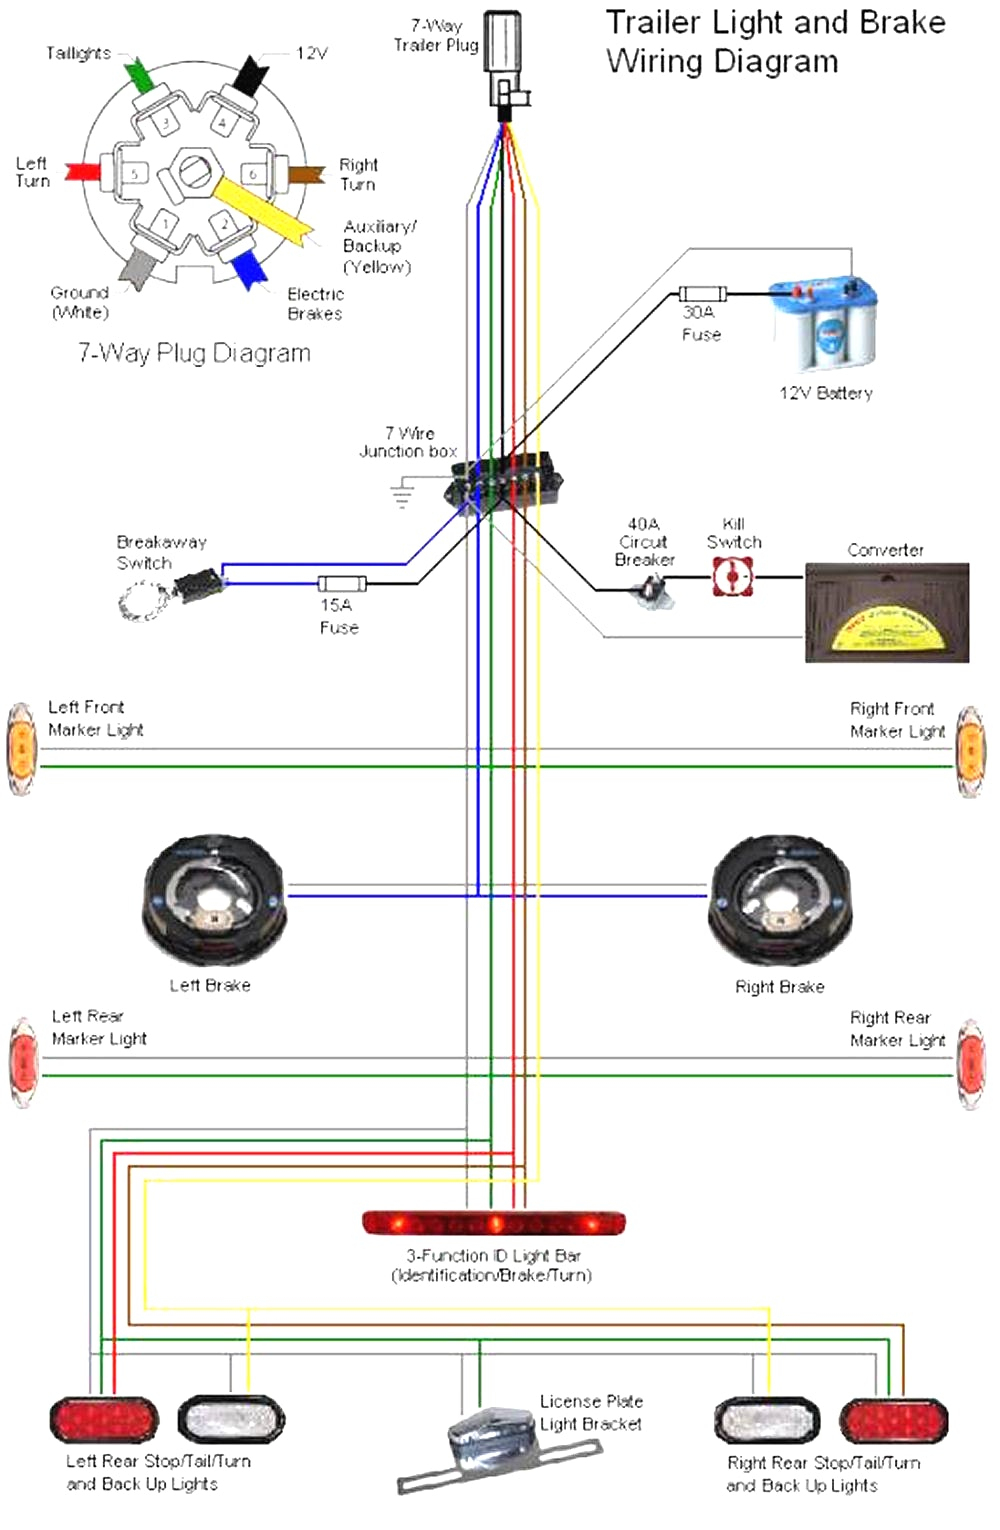 Faq Aa How To Wire Electric Trailer Brakes - Wiring Solution 2018 - Wiring Diagram Trailer With Brakes